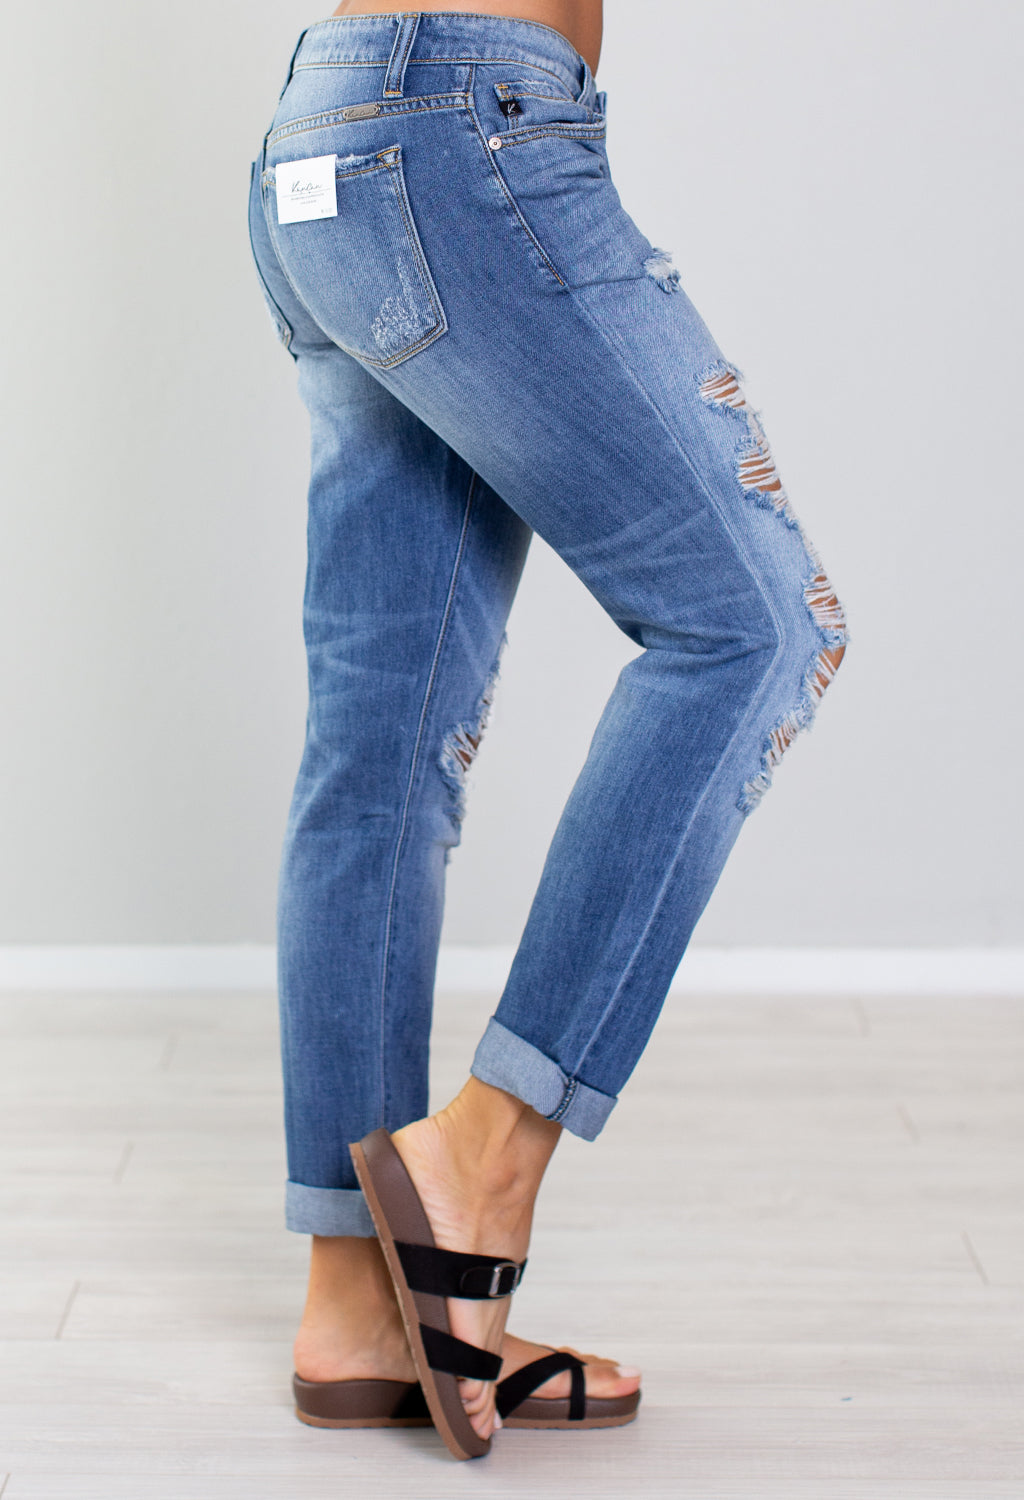 Seattle Kan Can Distressed Jeans